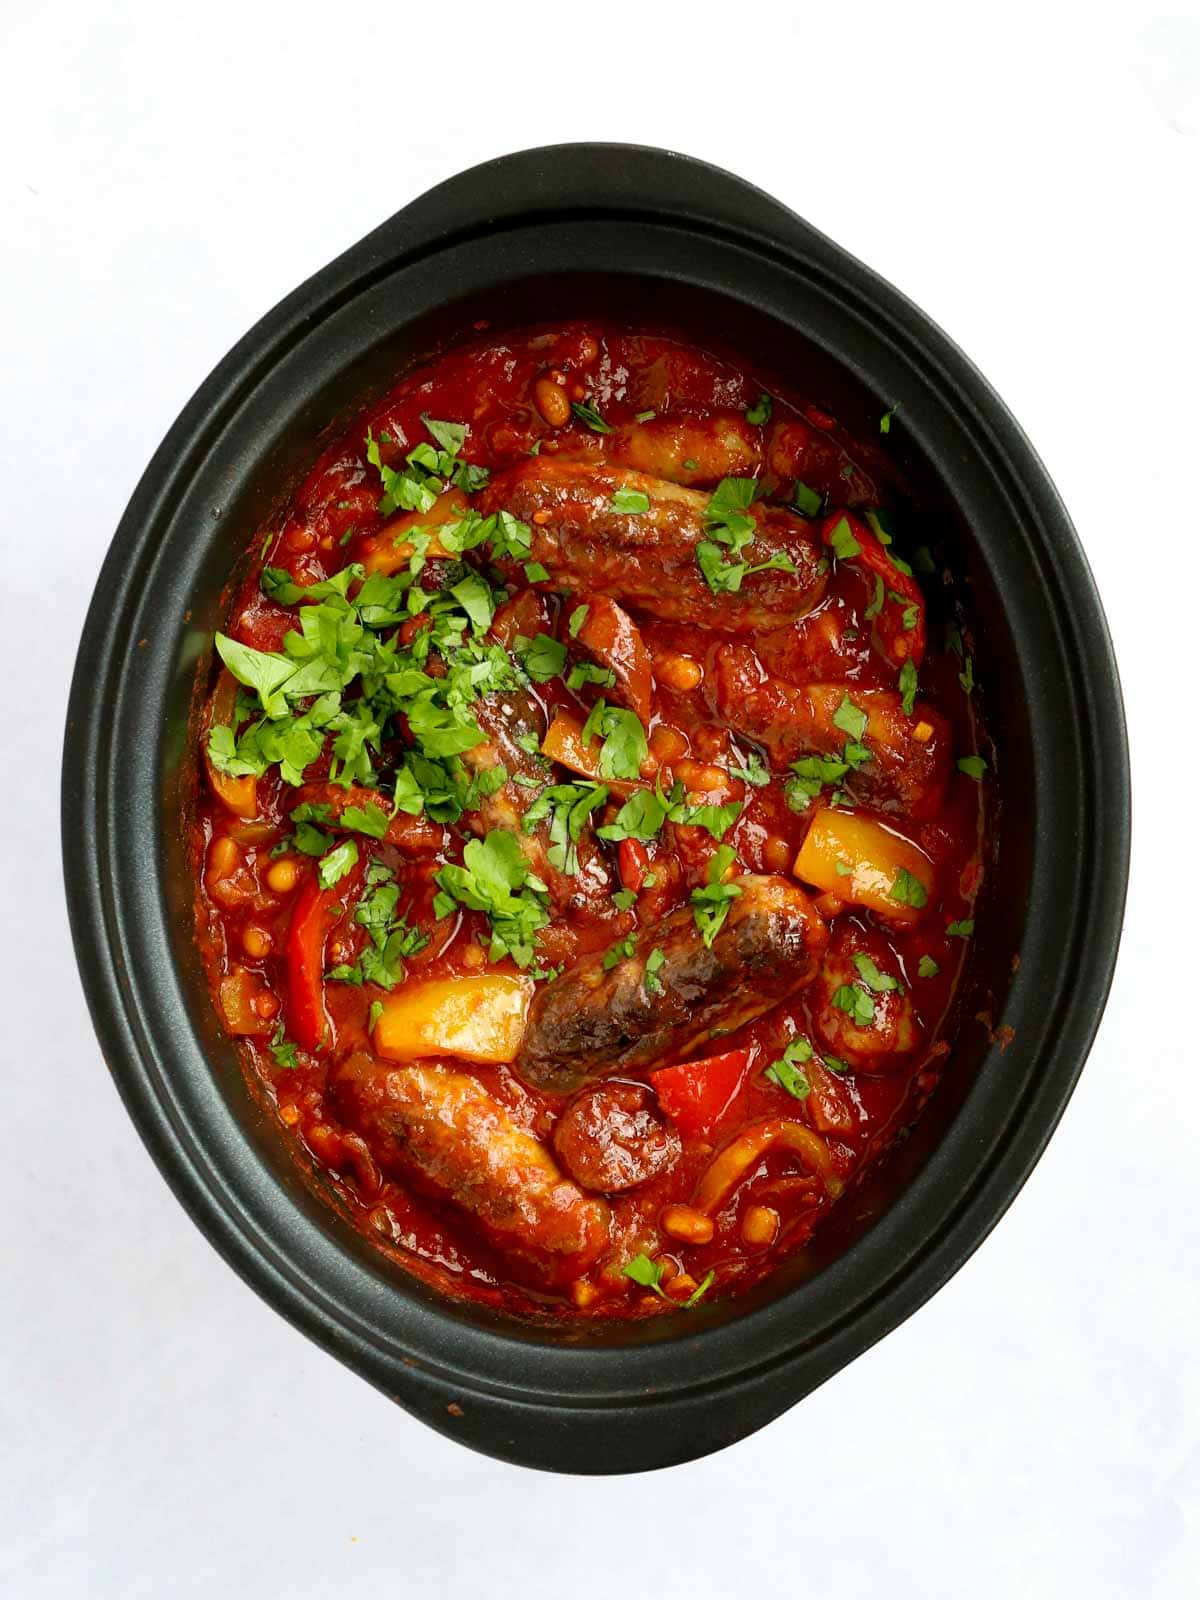 Sausage Slow Cooker Casserole with beans